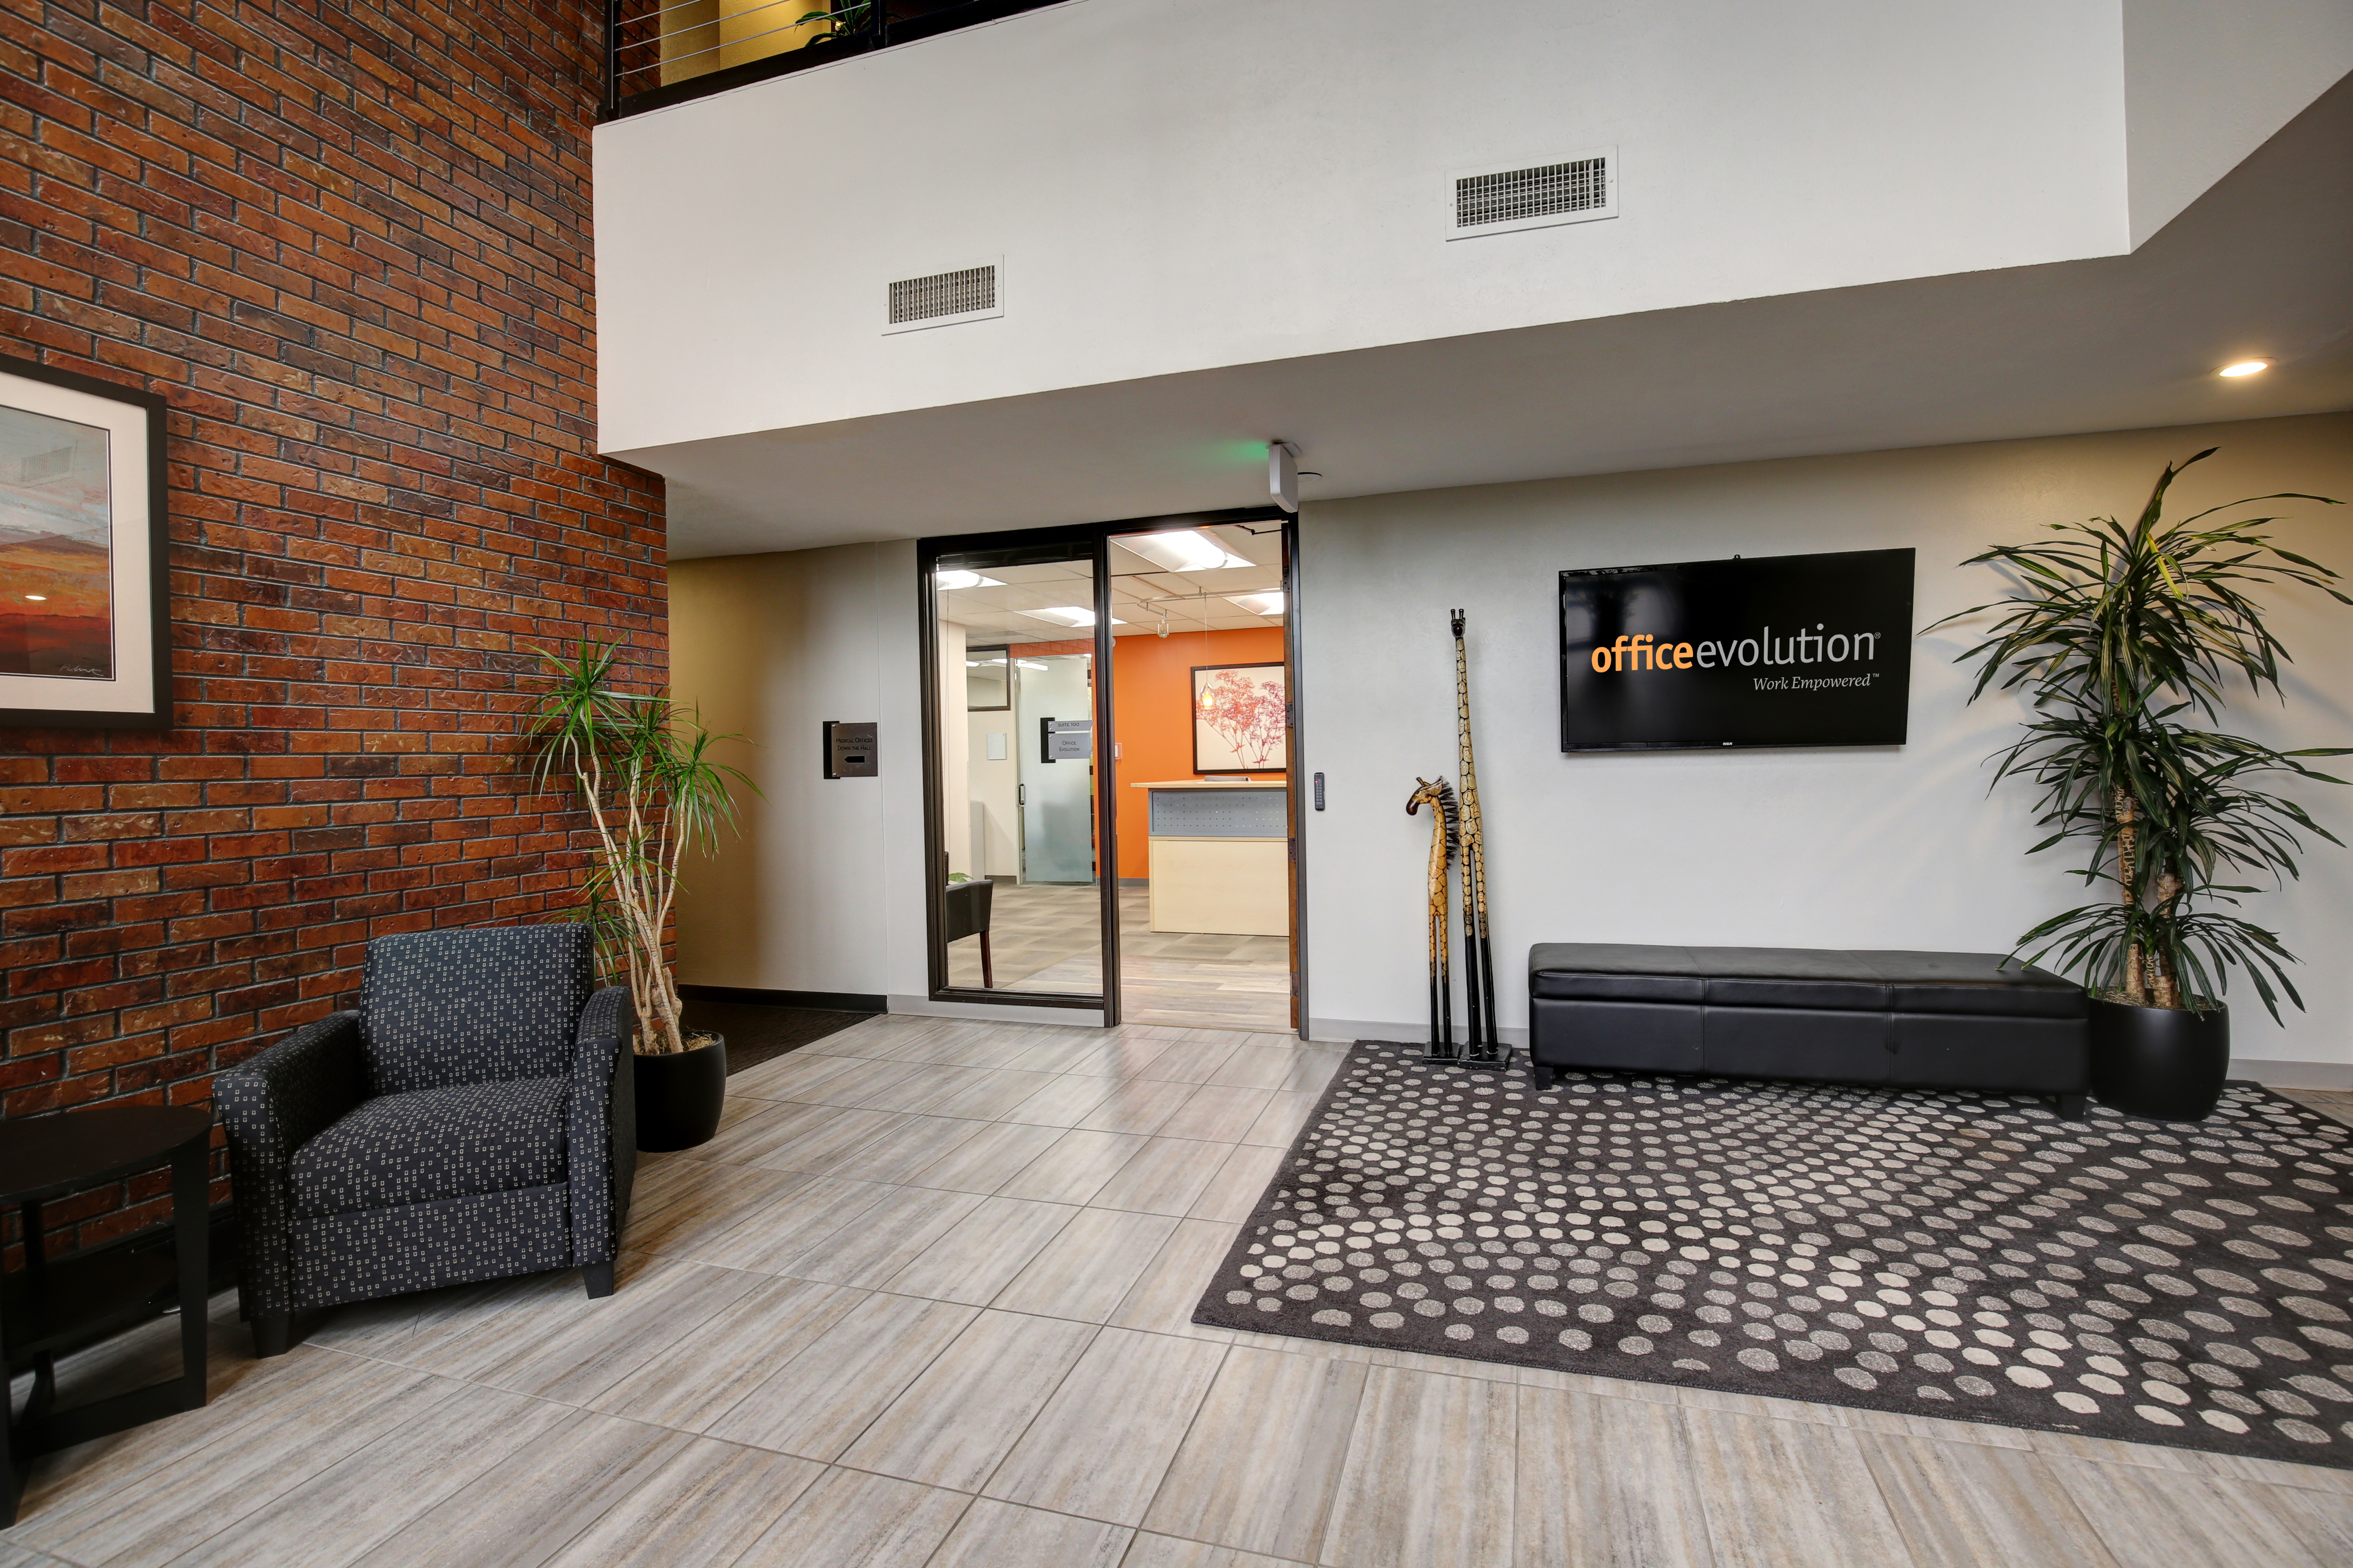 Office Evolution - Littleton, CO reviews | Shared Office Spaces at 4 W Dry Creek Cir #100 - Littleton CO